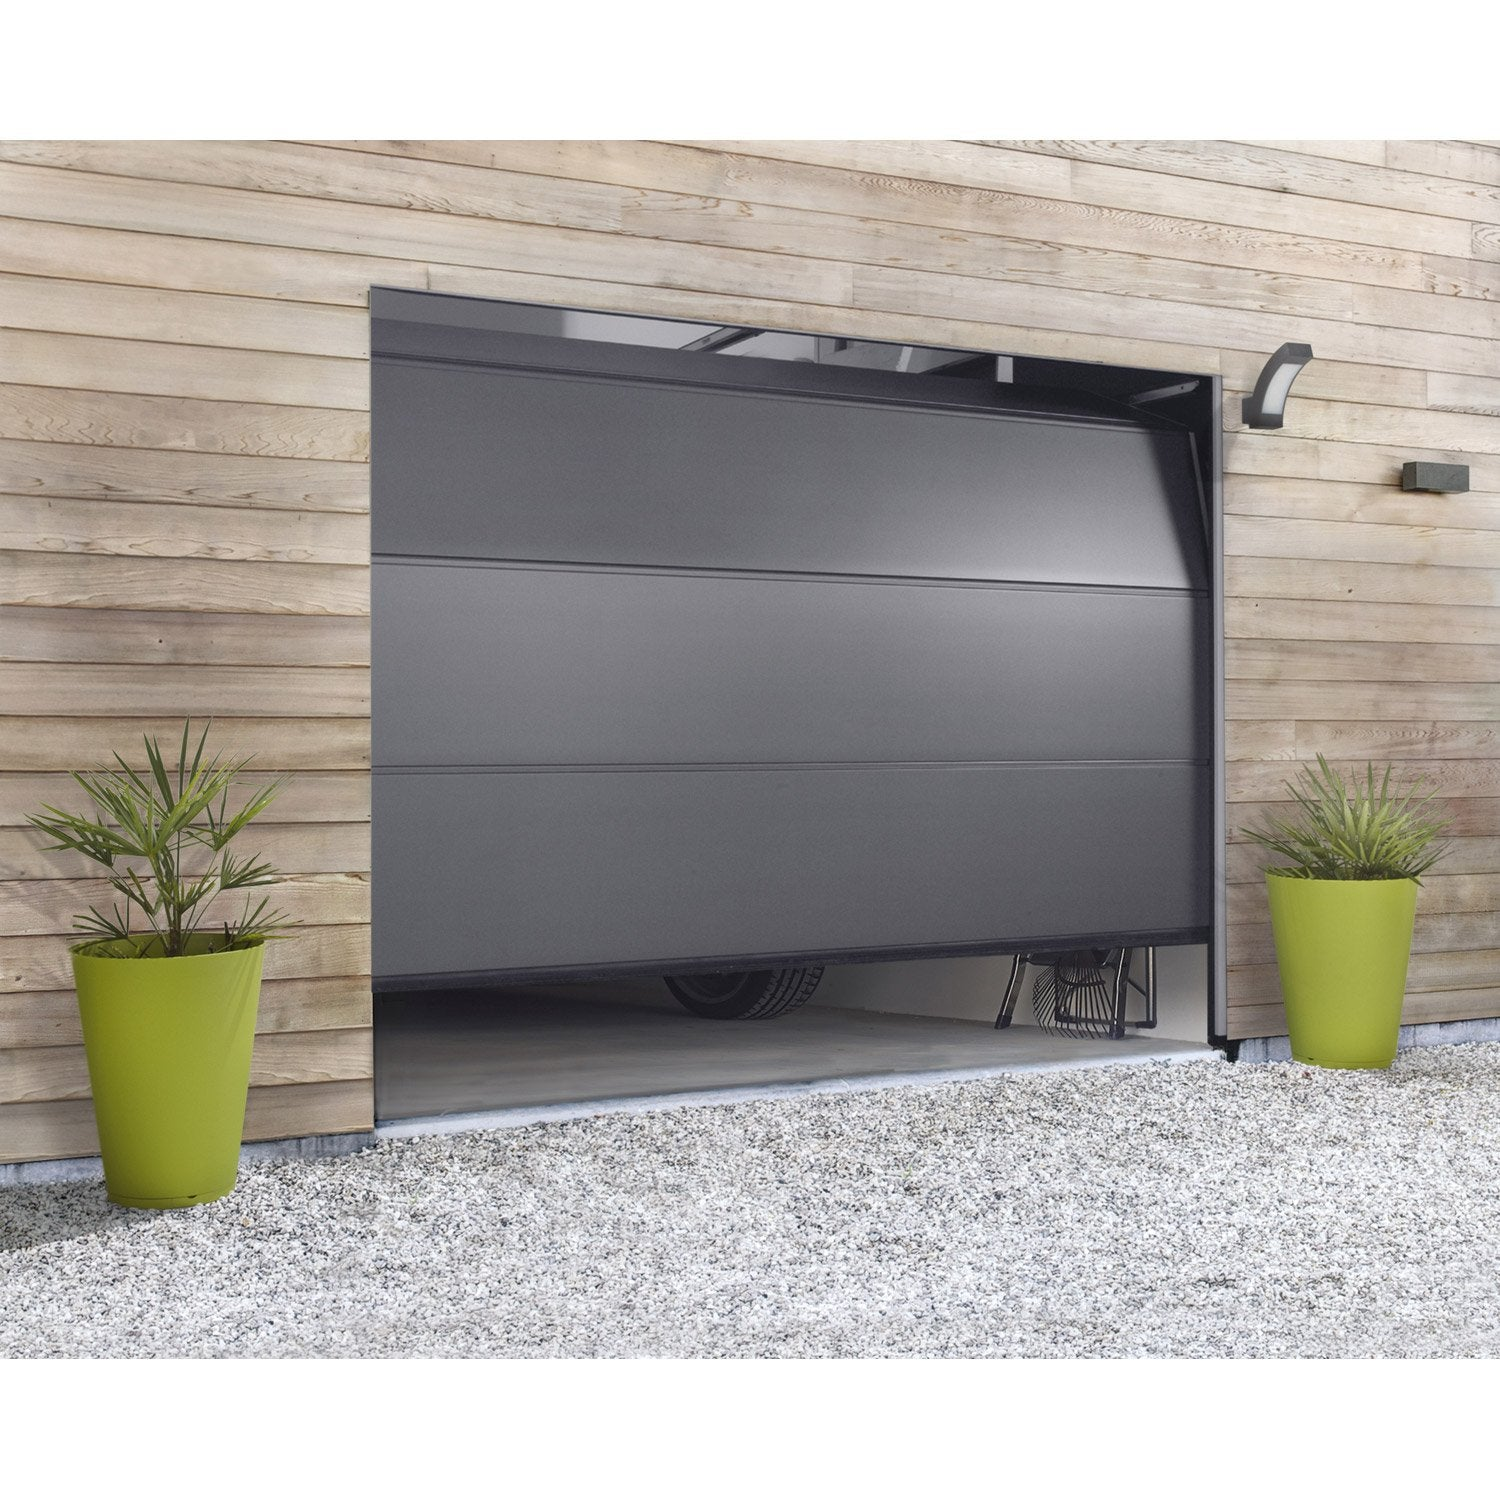 Porte entree hormann leroy merlin pm27 jornalagora for Porte de garage sectionnelle 220 x 200